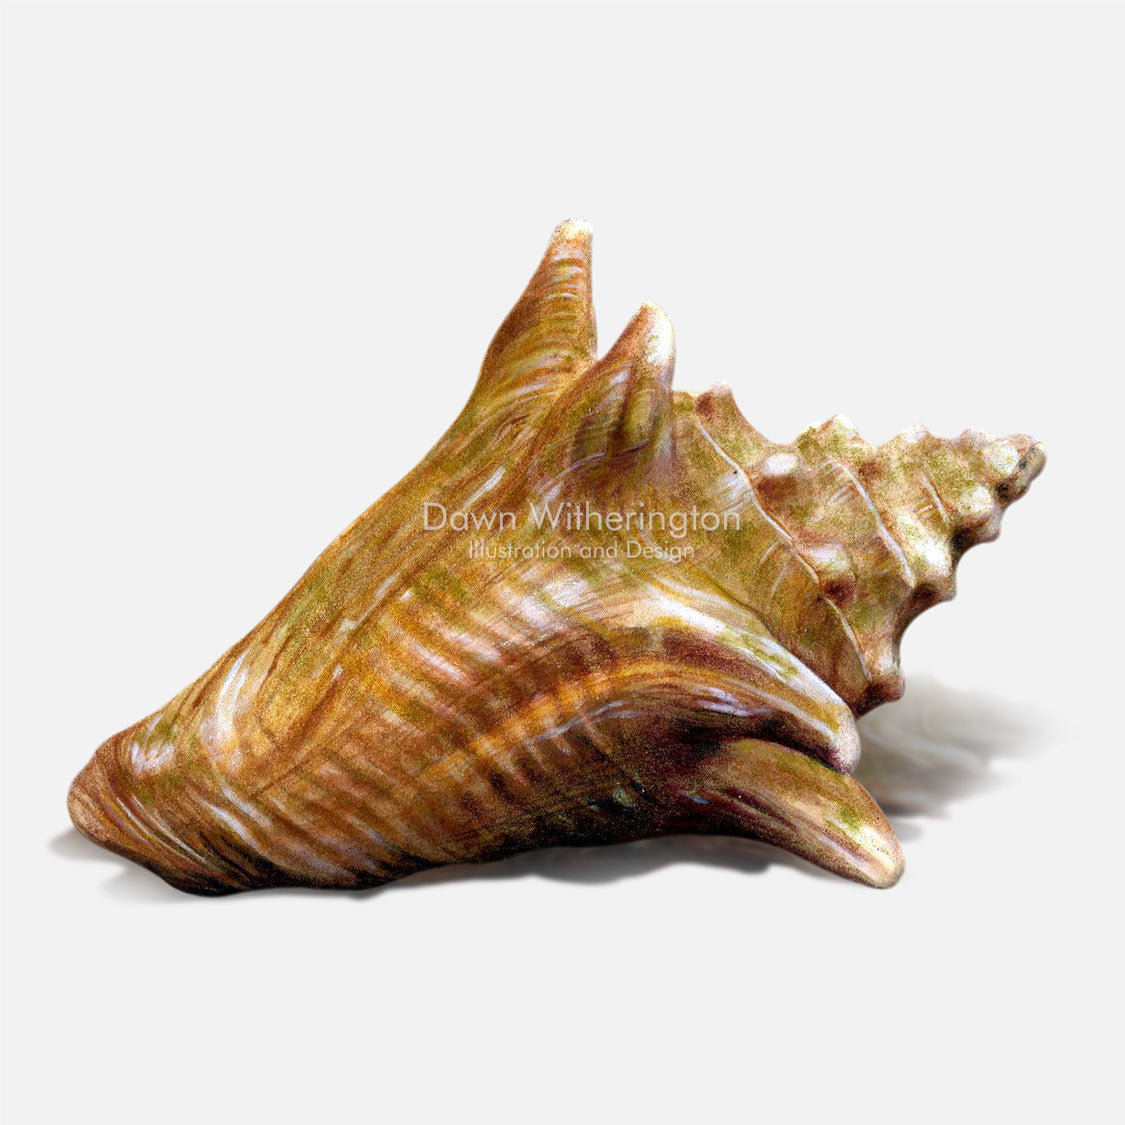 This beautiful drawing of a sub adult queen conch, Strombus gigas, is biologically accurate in detail.